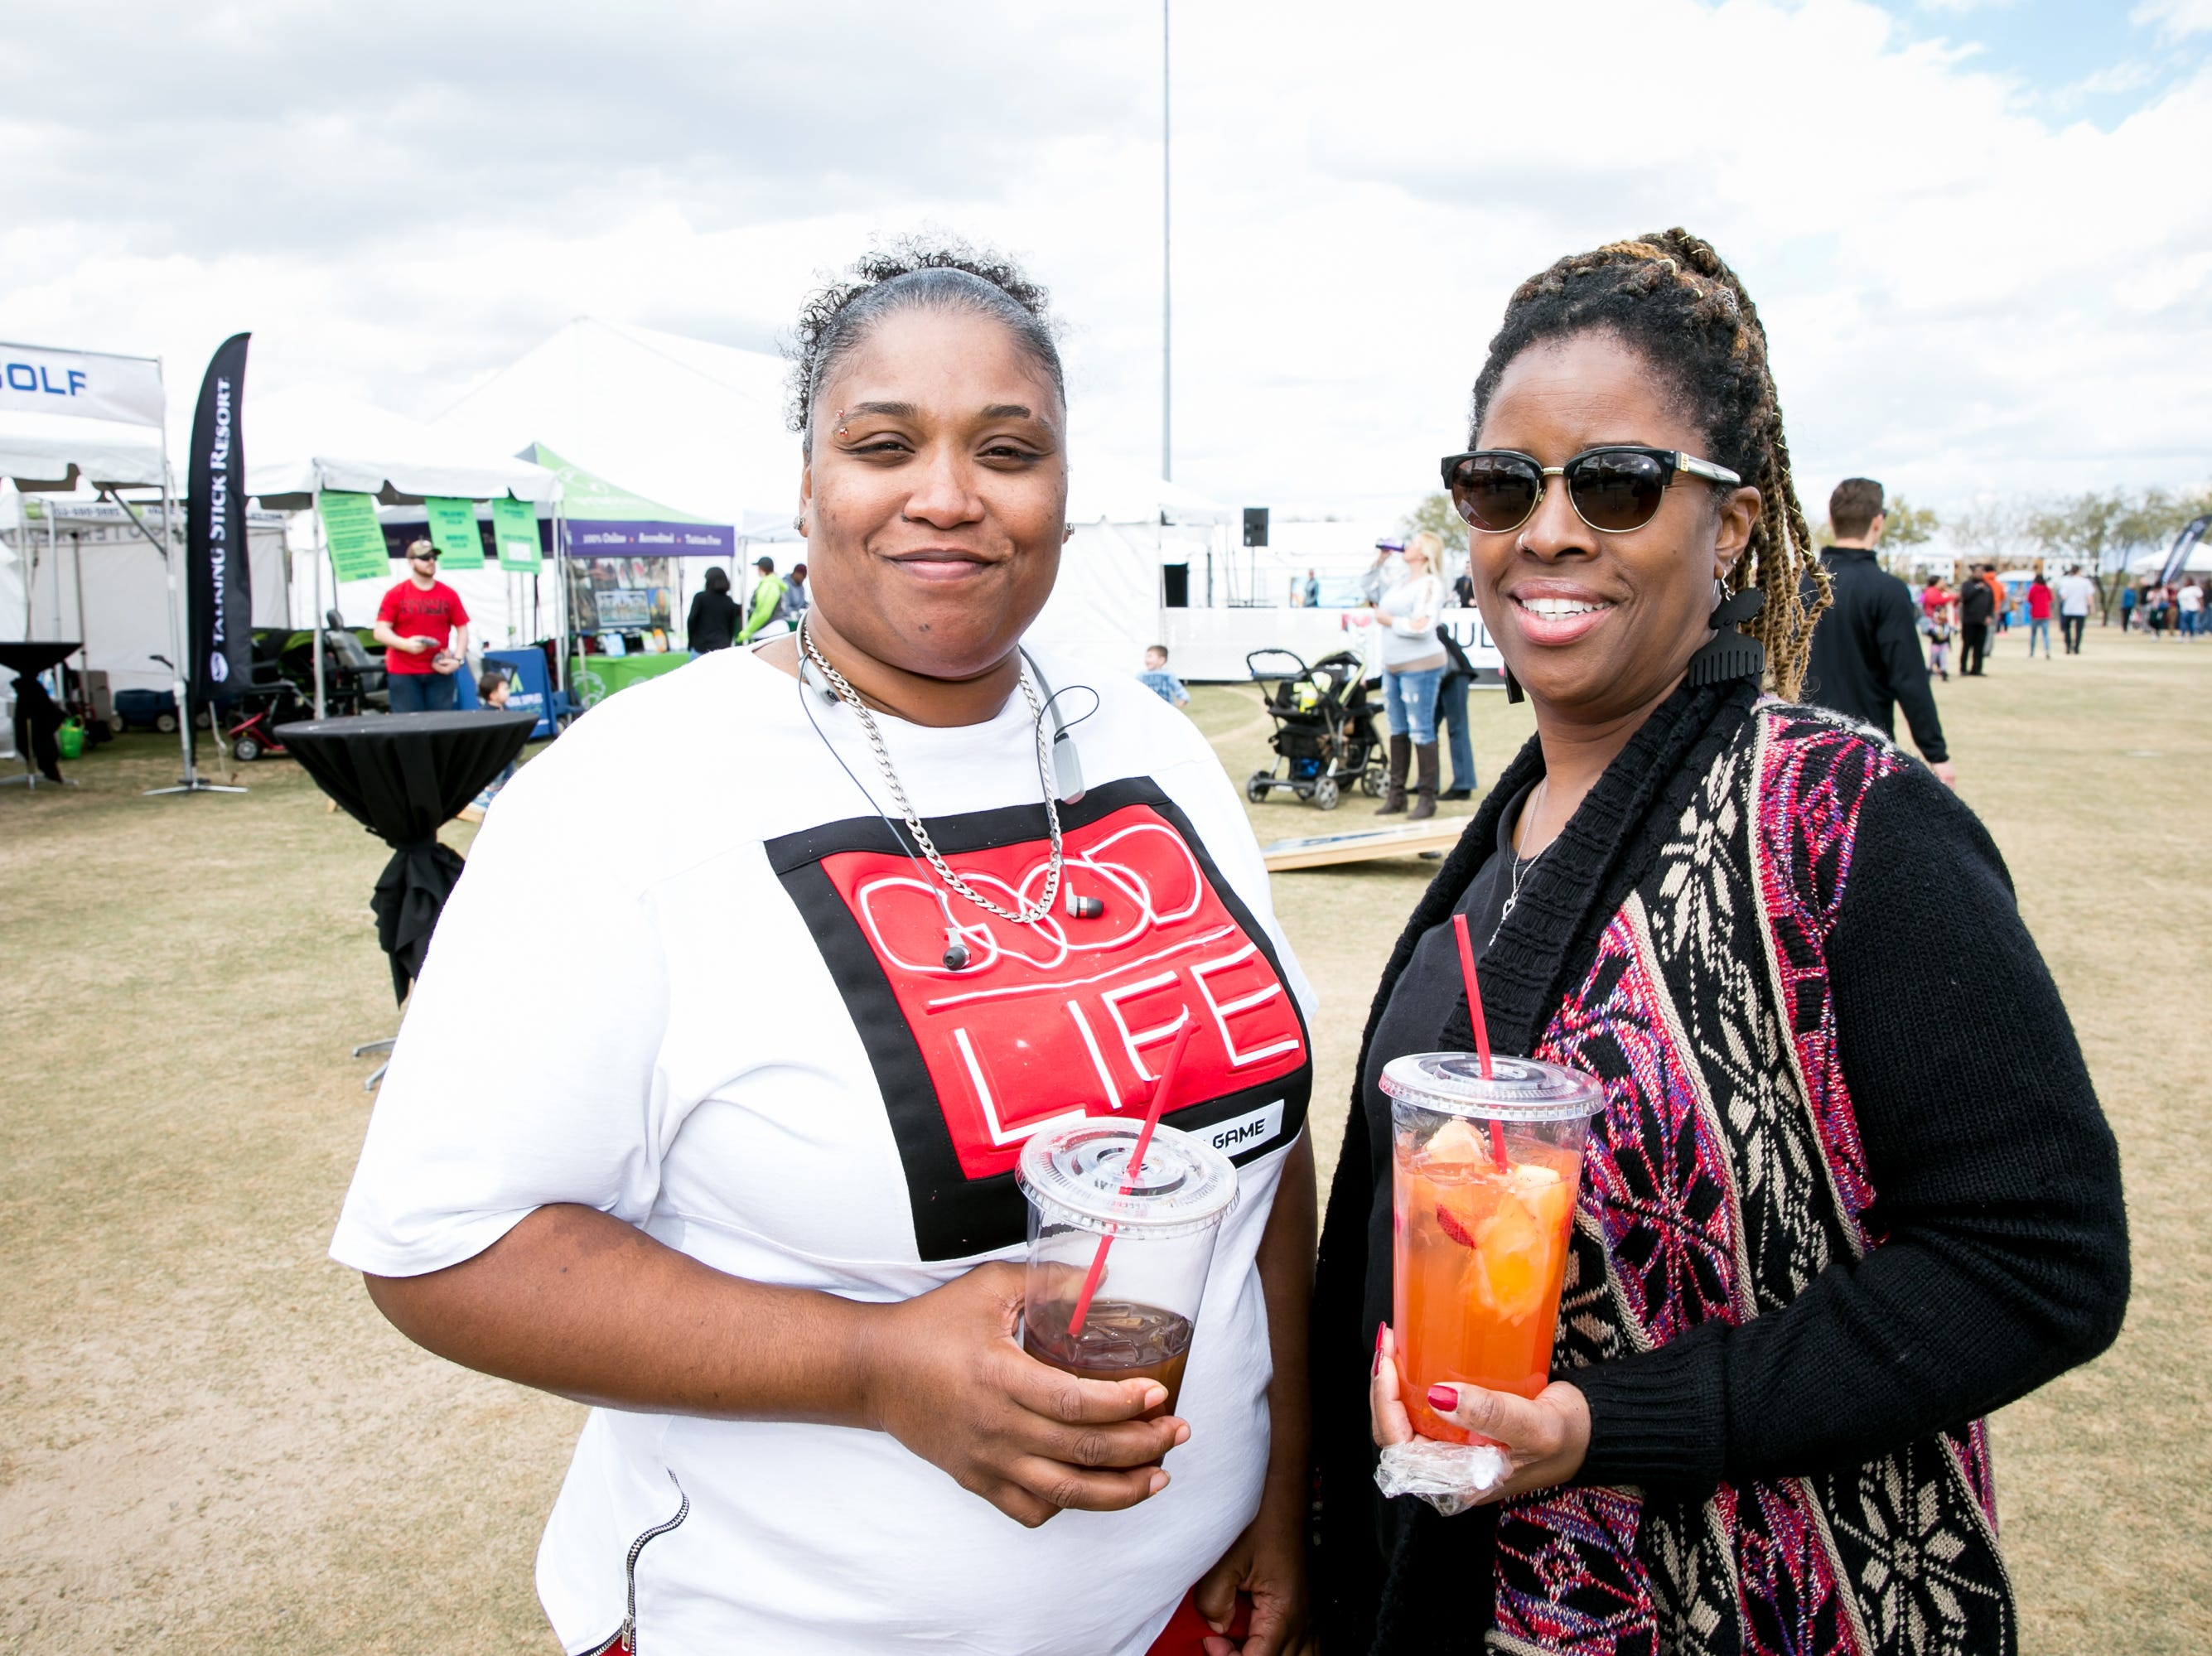 Great times were had during the Street Eats Food Truck Festival at Salt River Fields near Scottsdale on Feb. 17, 2019.